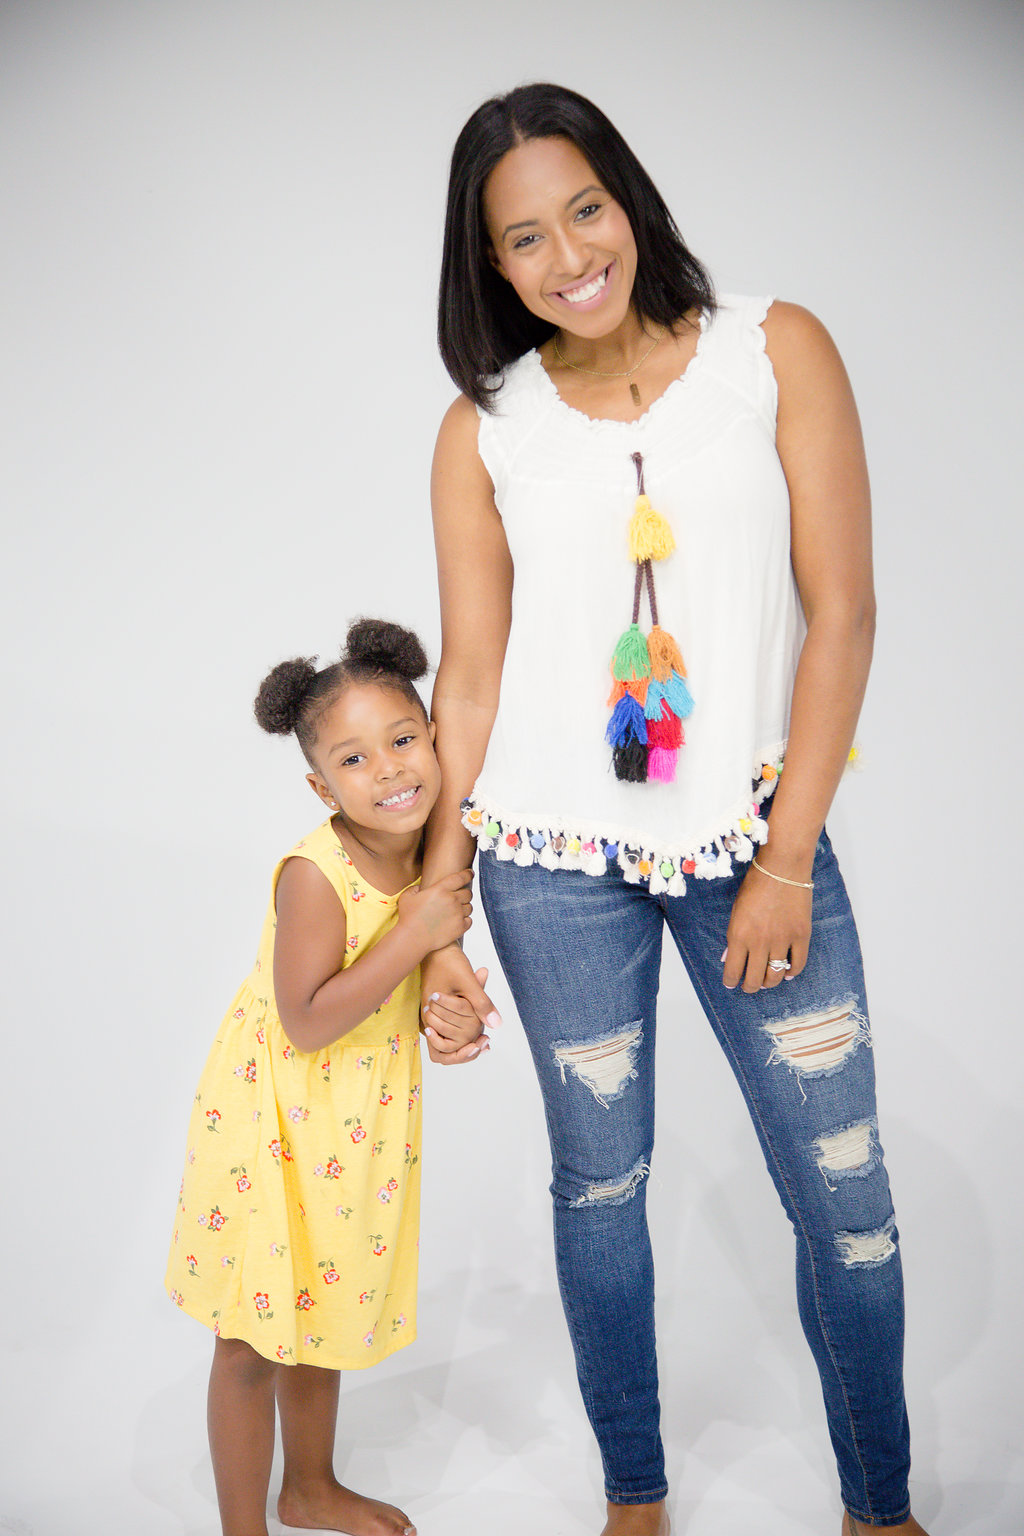 toni collier, mom and daughter